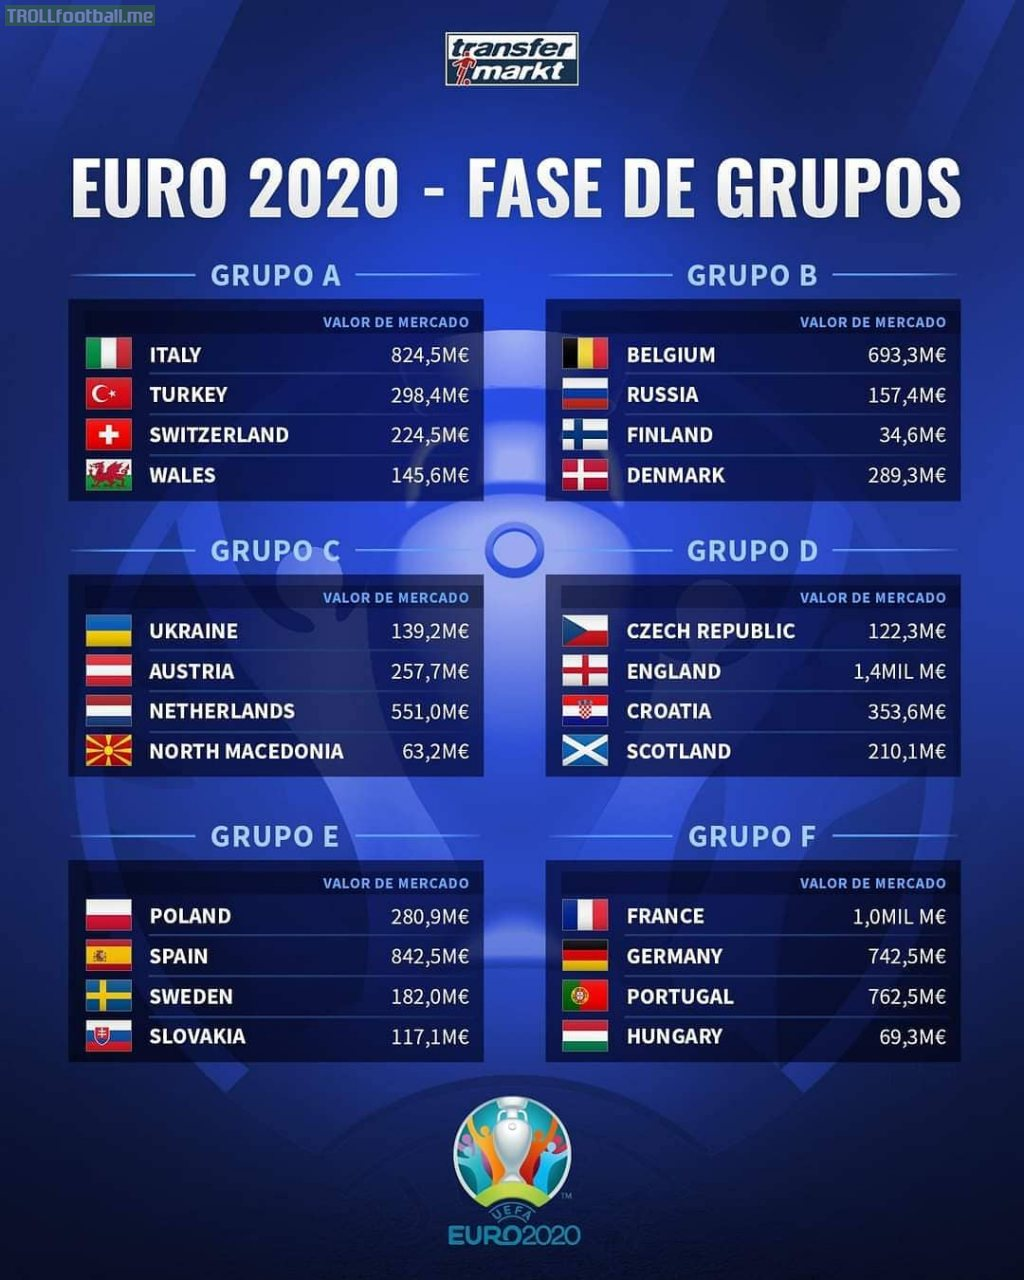 Squad value of every country in Euro 2020